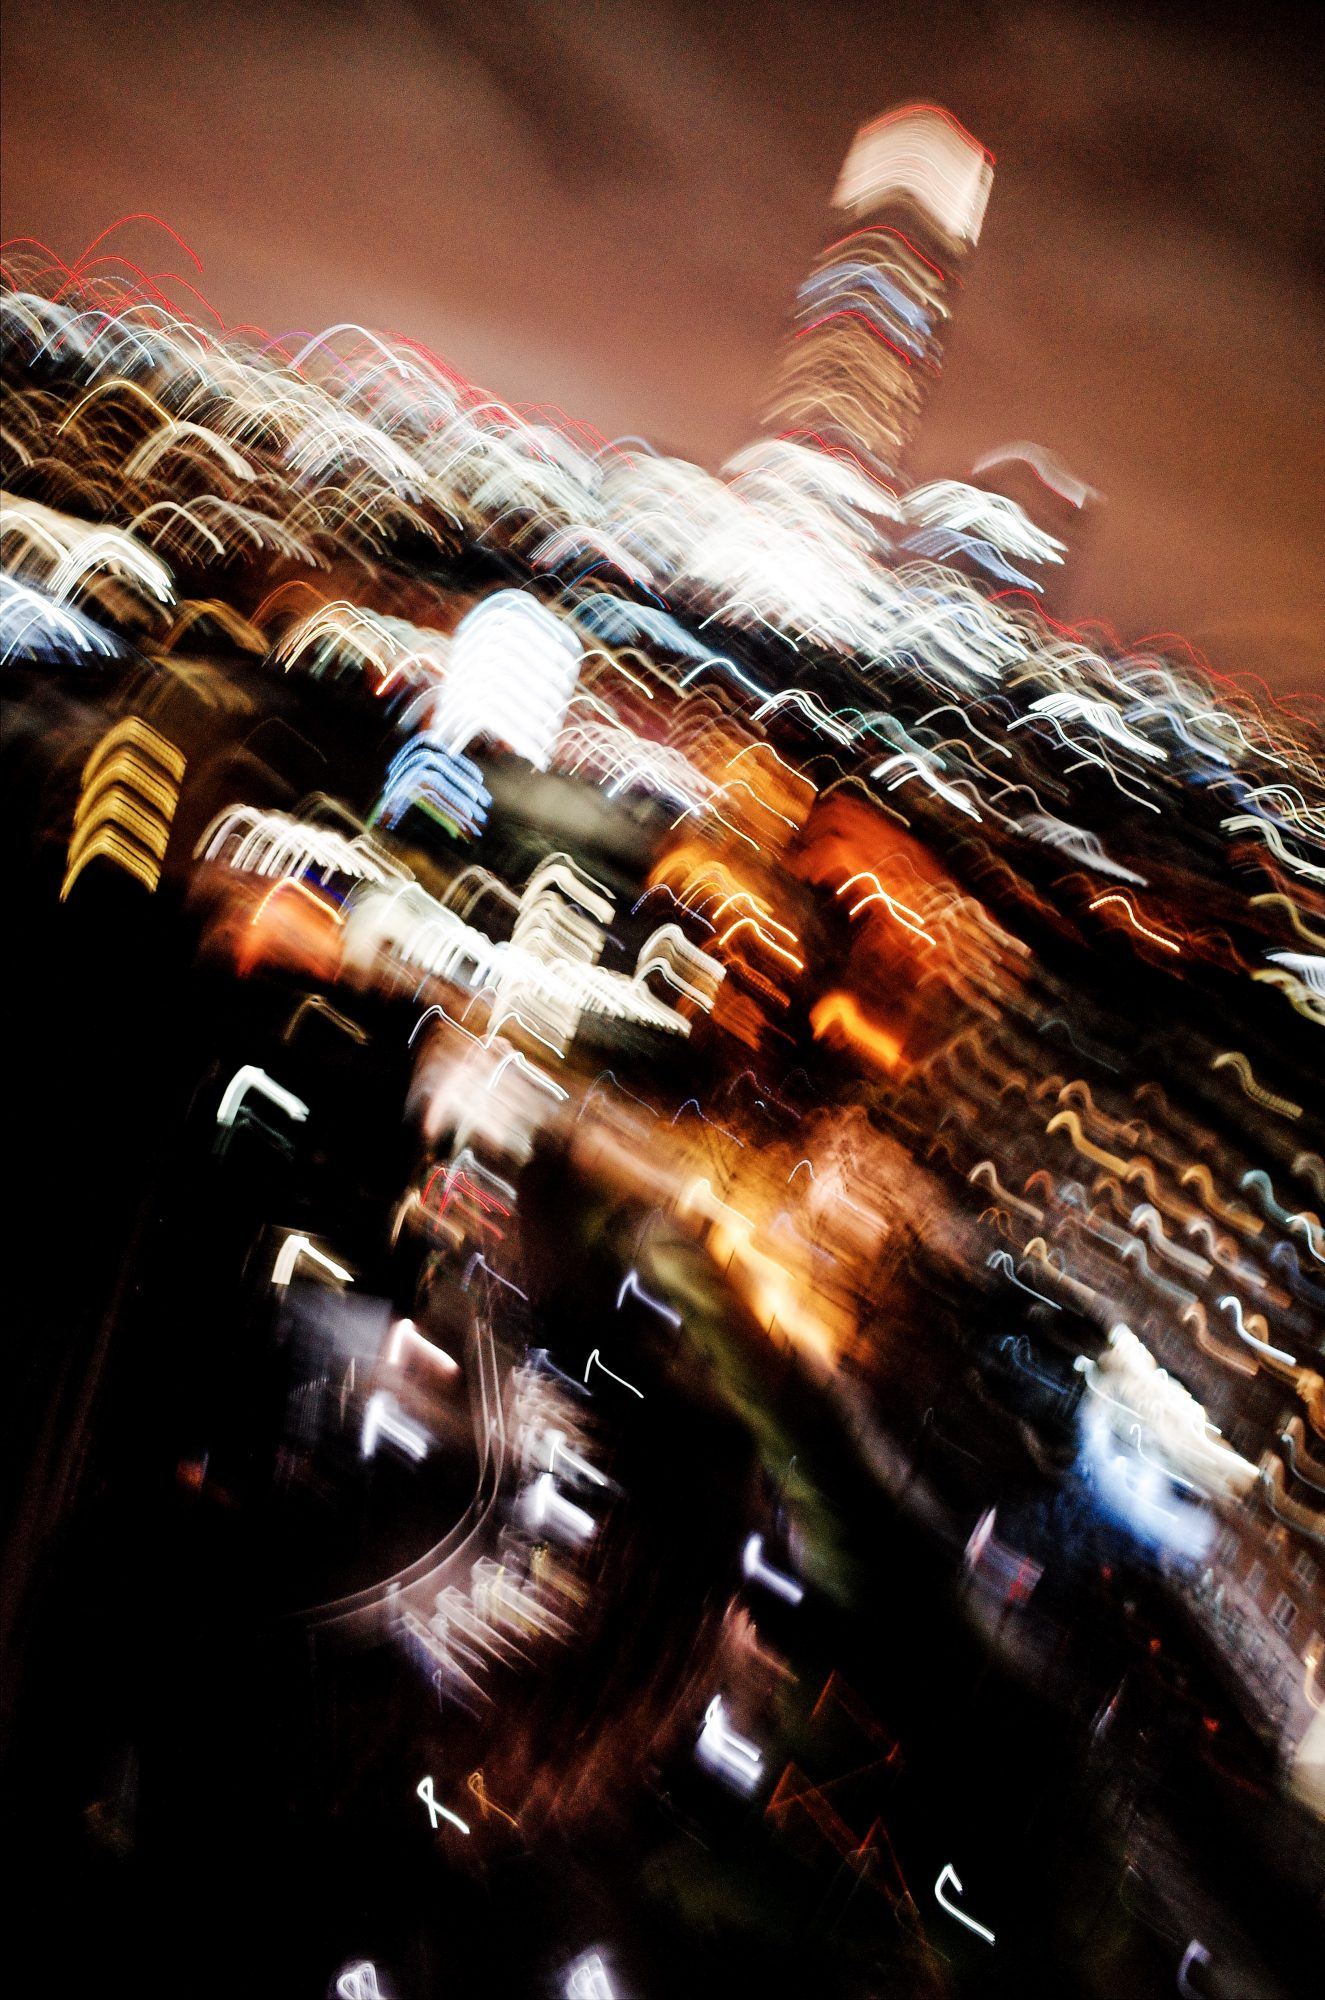 Blurred London skyline, 2018